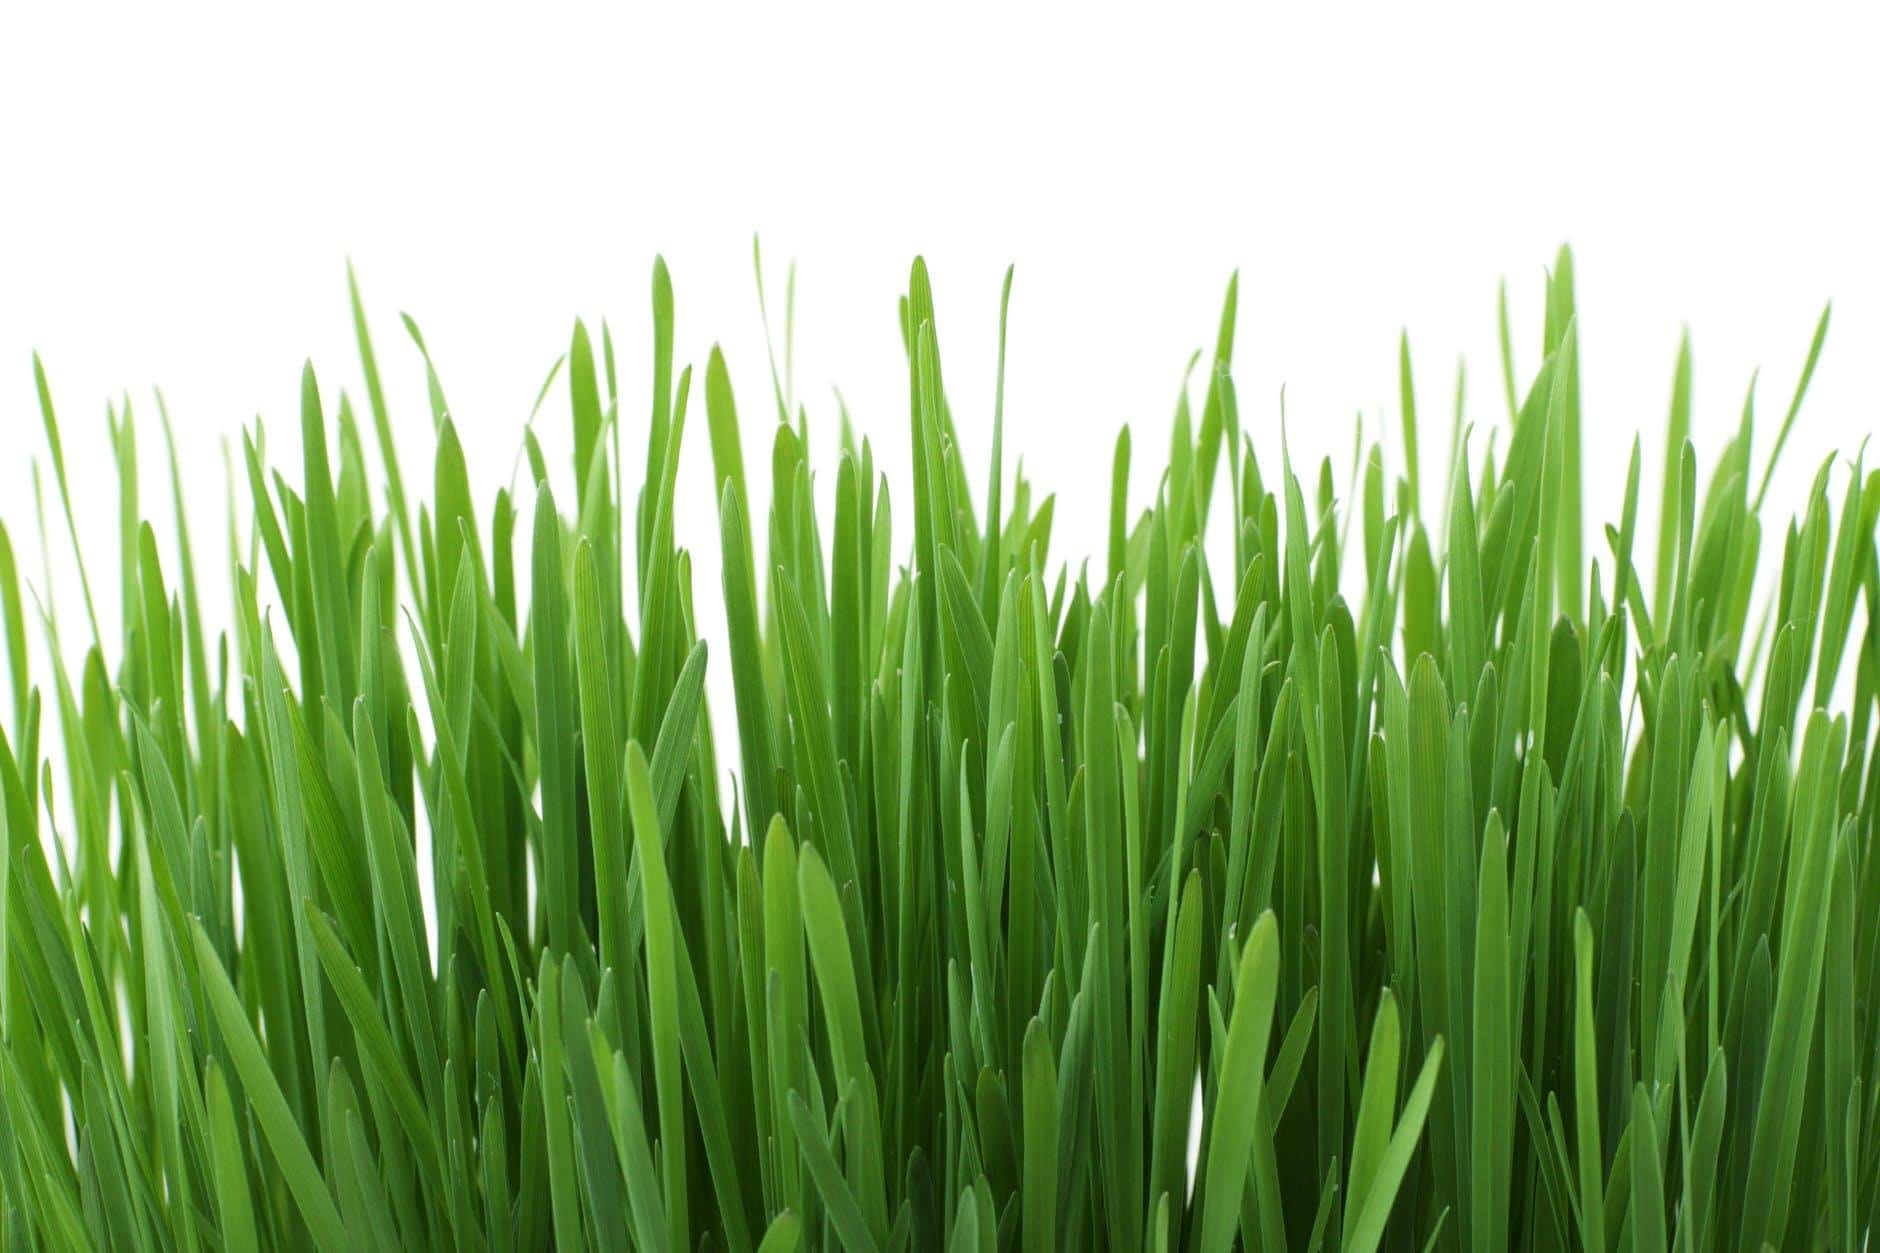 Handy Tips On How To Install And Maintain Artificial Grass In Your Yard. Artificial blades look like natural